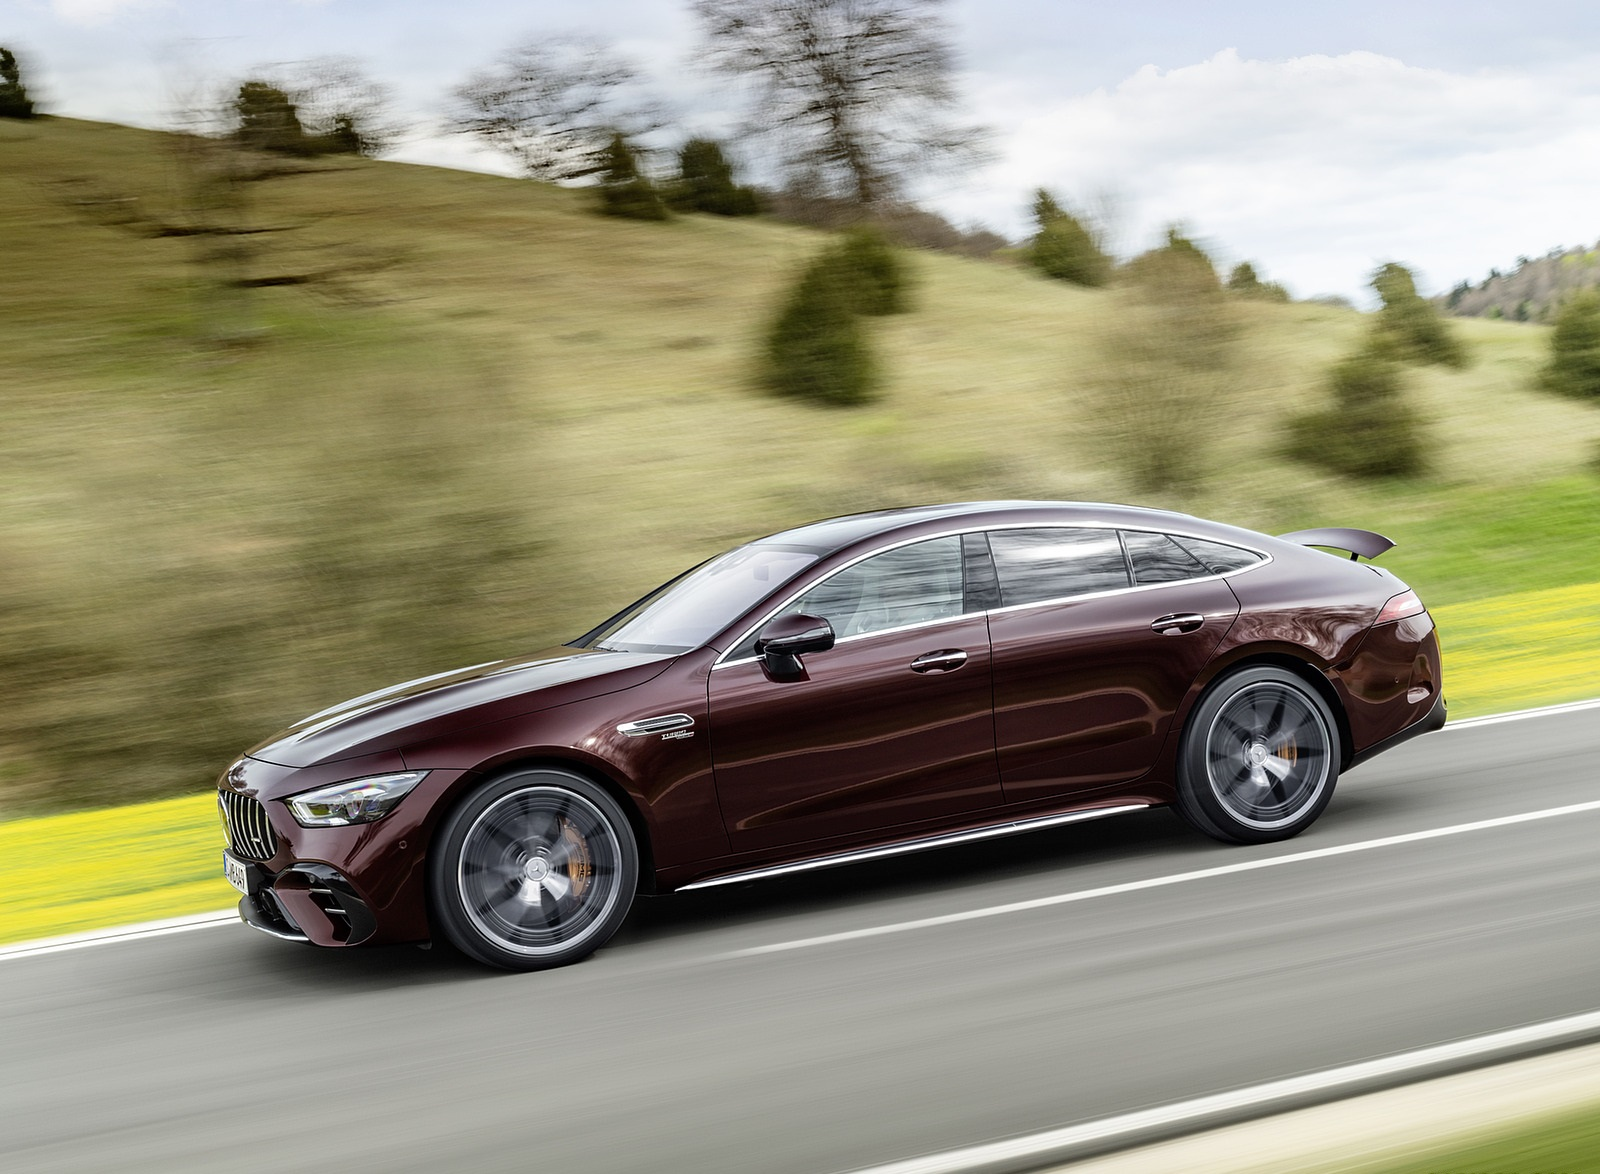 2022 Mercedes-AMG GT 53 4MATIC+ 4-Door Coupe (Color: Rubellite Red) Side Wallpapers (2)